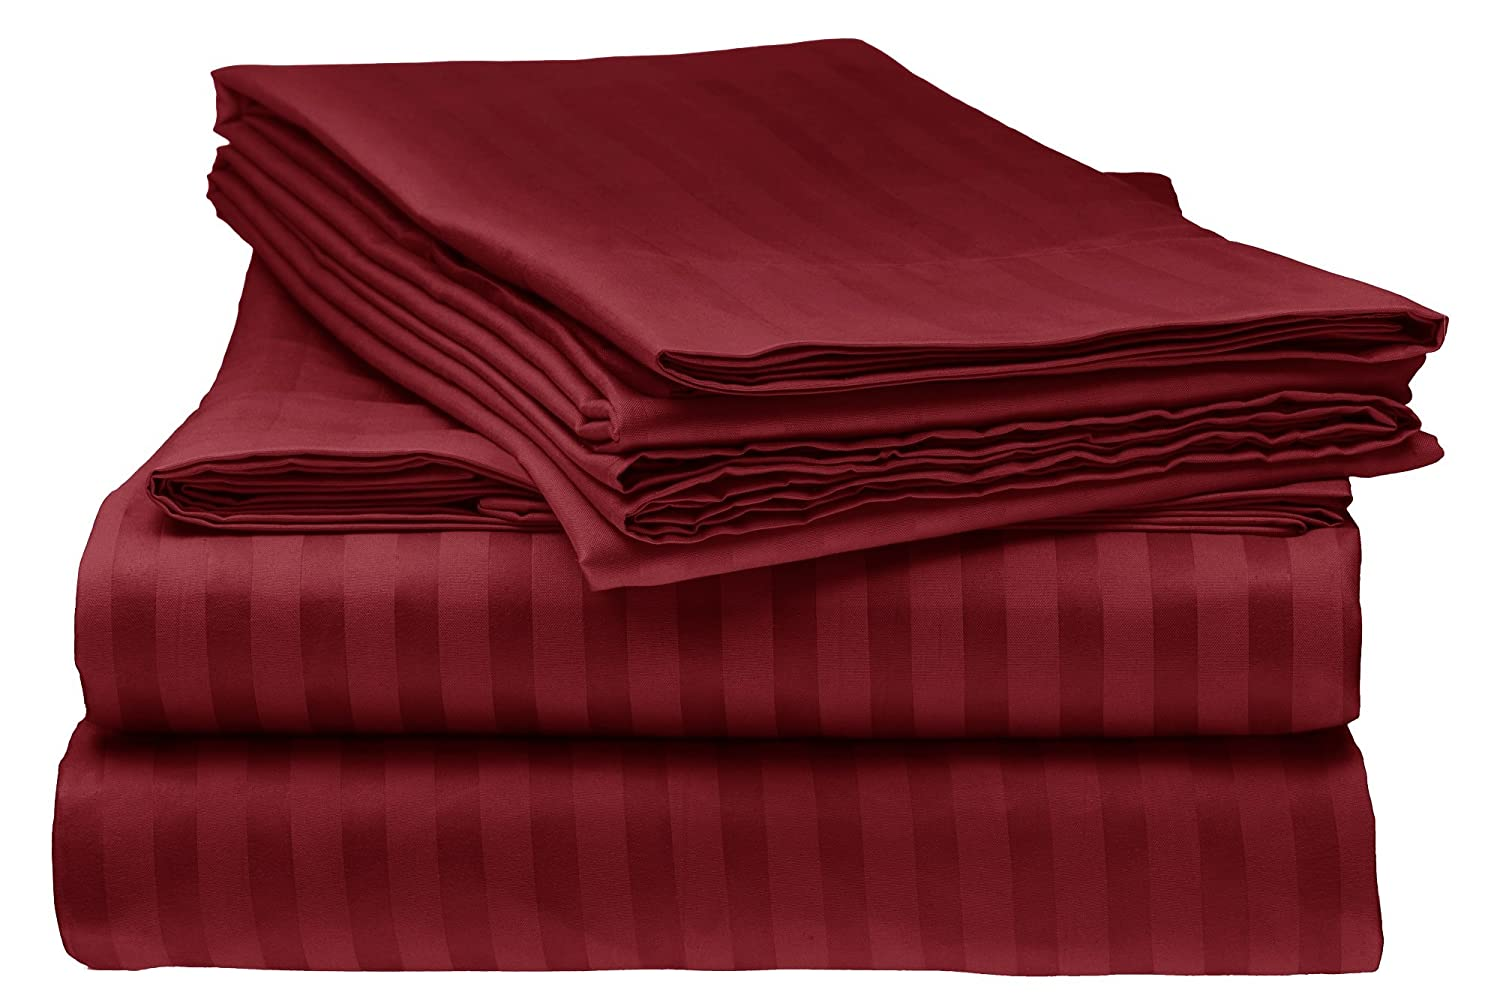 Bella kline Bedding 1800 Series 4 pc Bed Sheet Set with Pillowcases Hypoallergenic, 1 Soft Silky Luxurious Feel, Fitted and Flat Sheets Lifetime - Queen Size, Burgundy